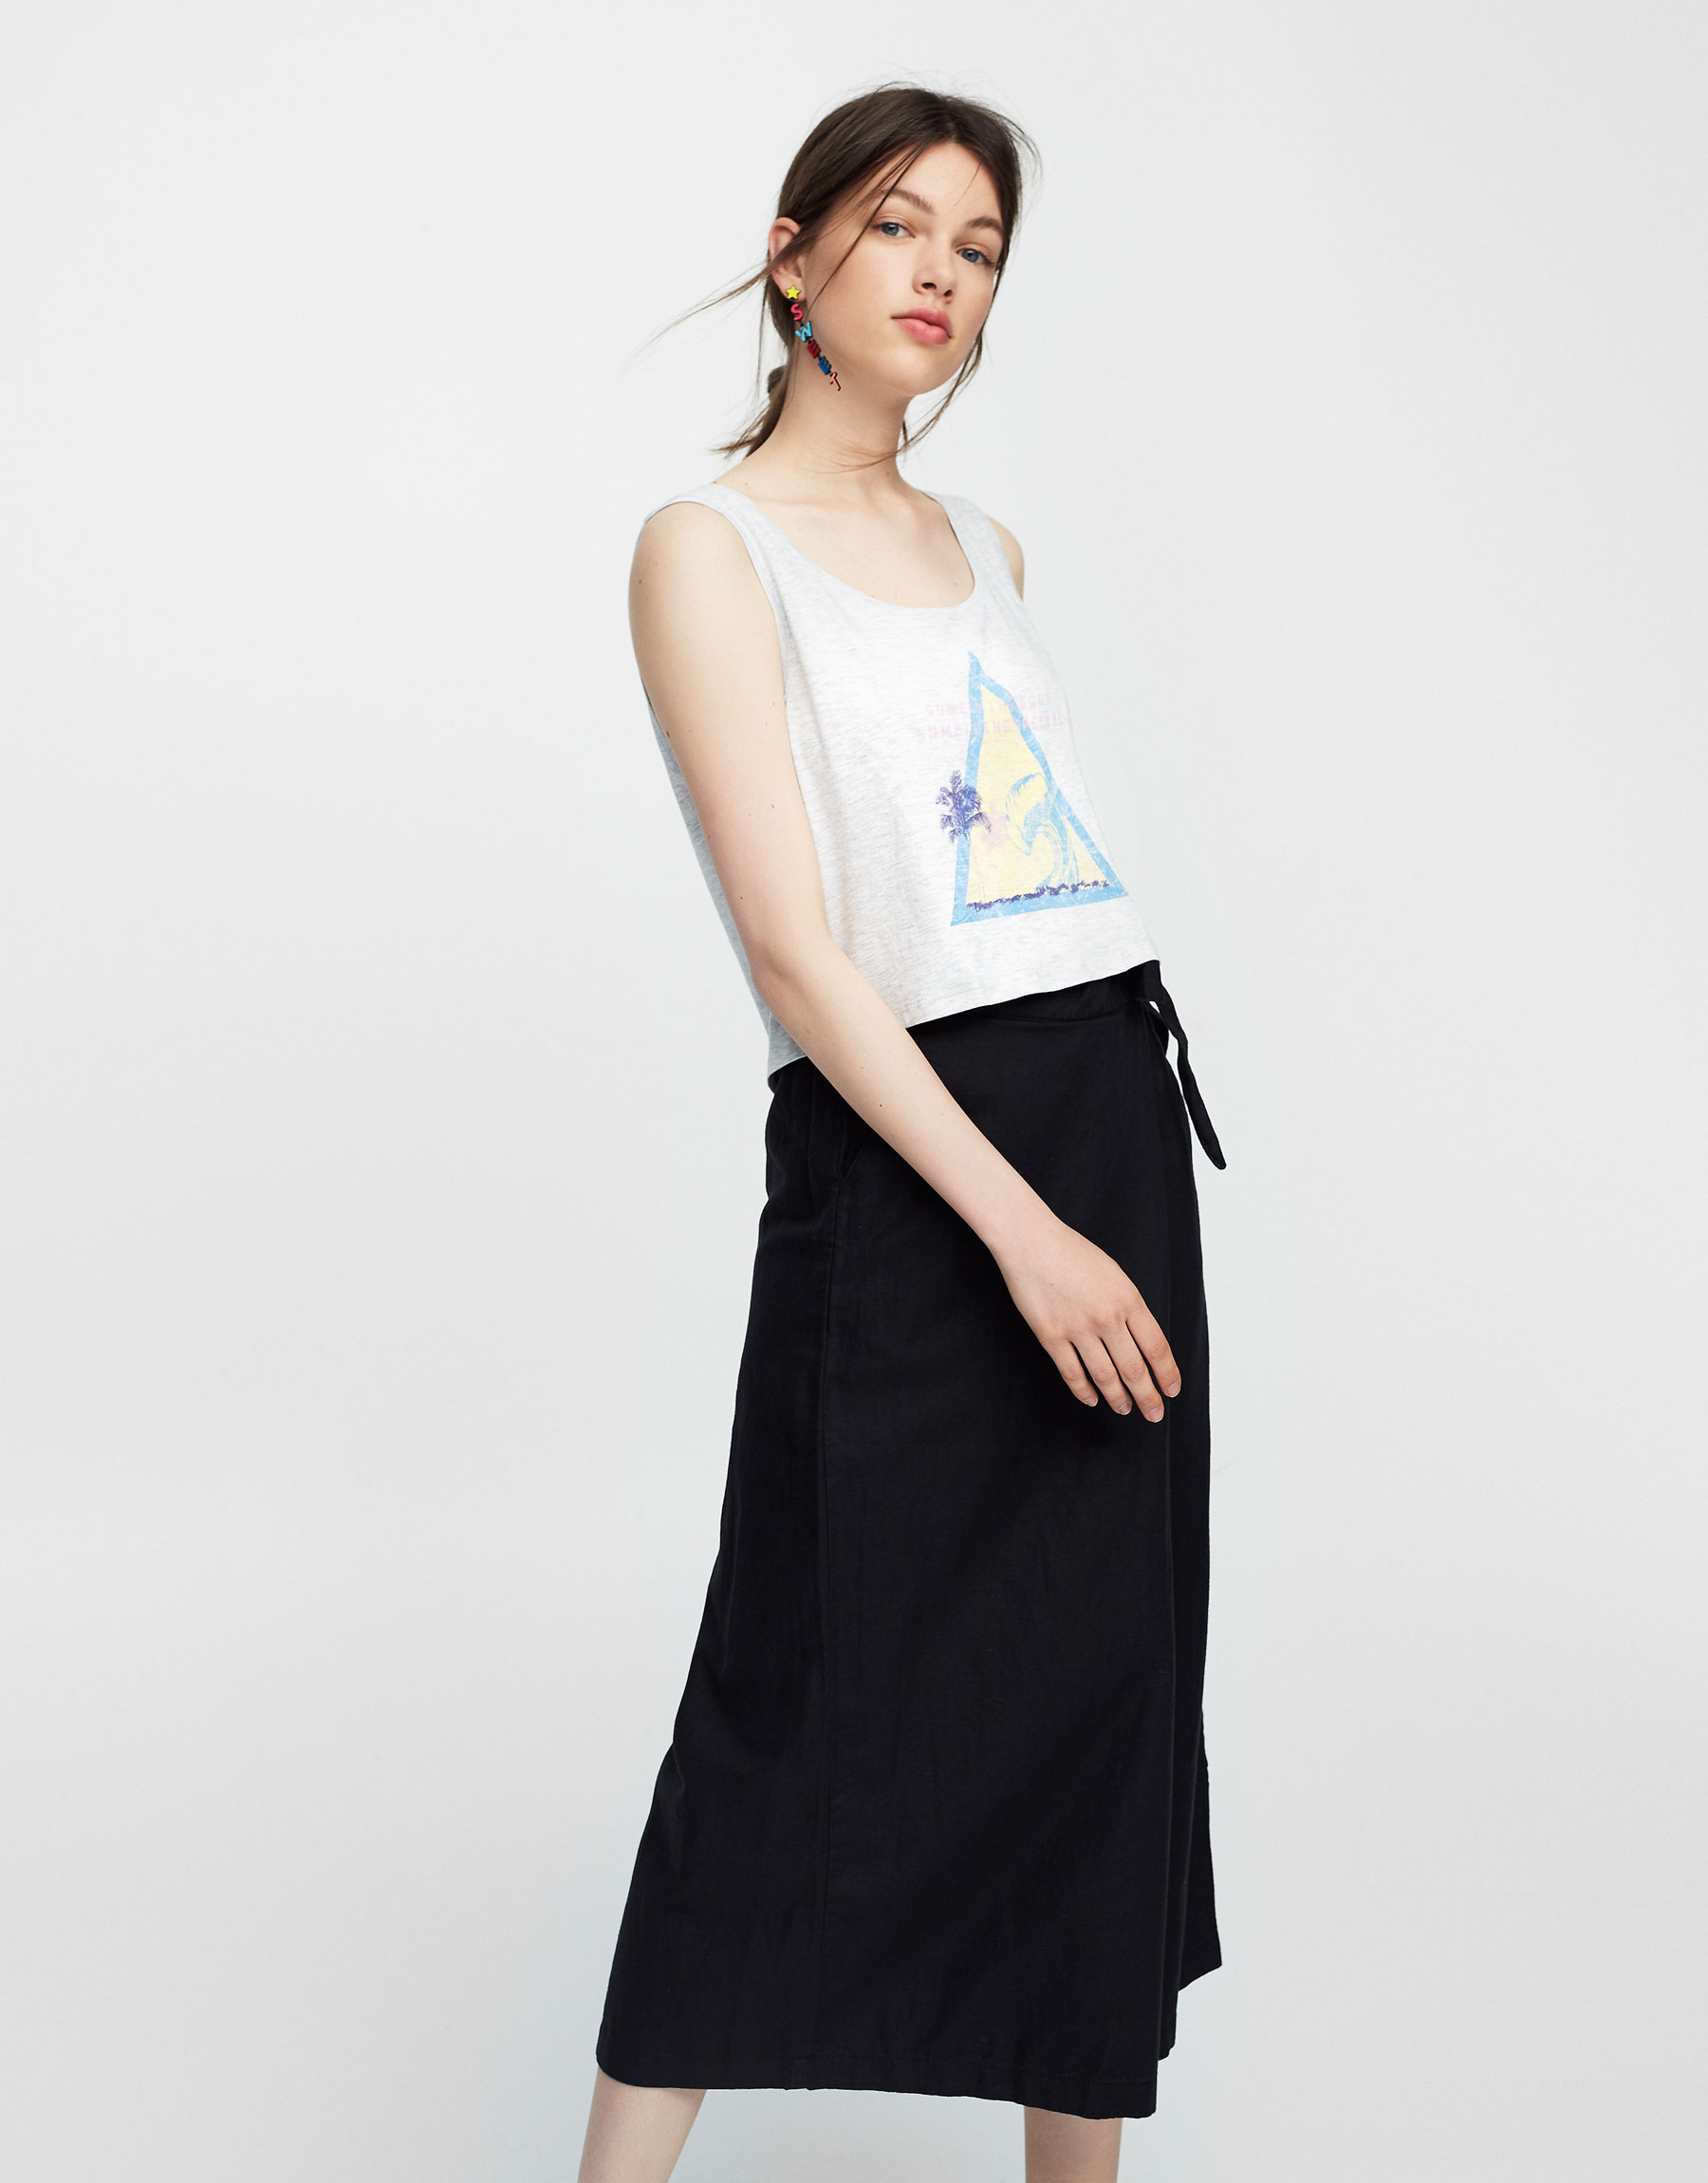 Crop top with wave graphic